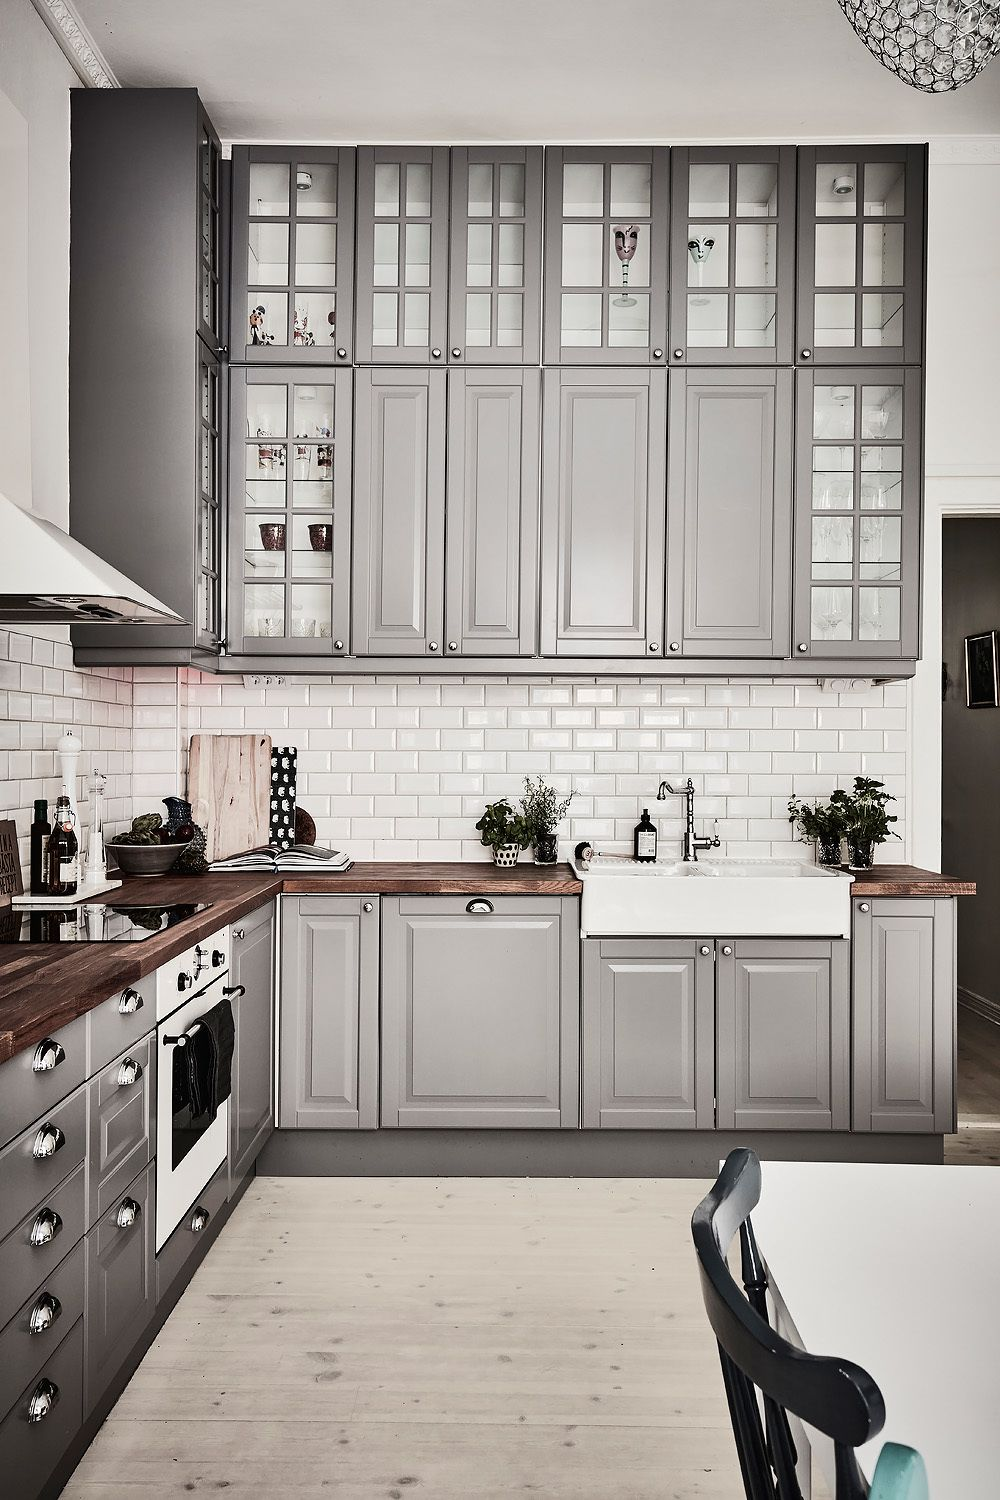 Inspiring Kitchens You Wont Believe Are IKEA Decorating Tips - Pictures of light grey kitchen cabinets